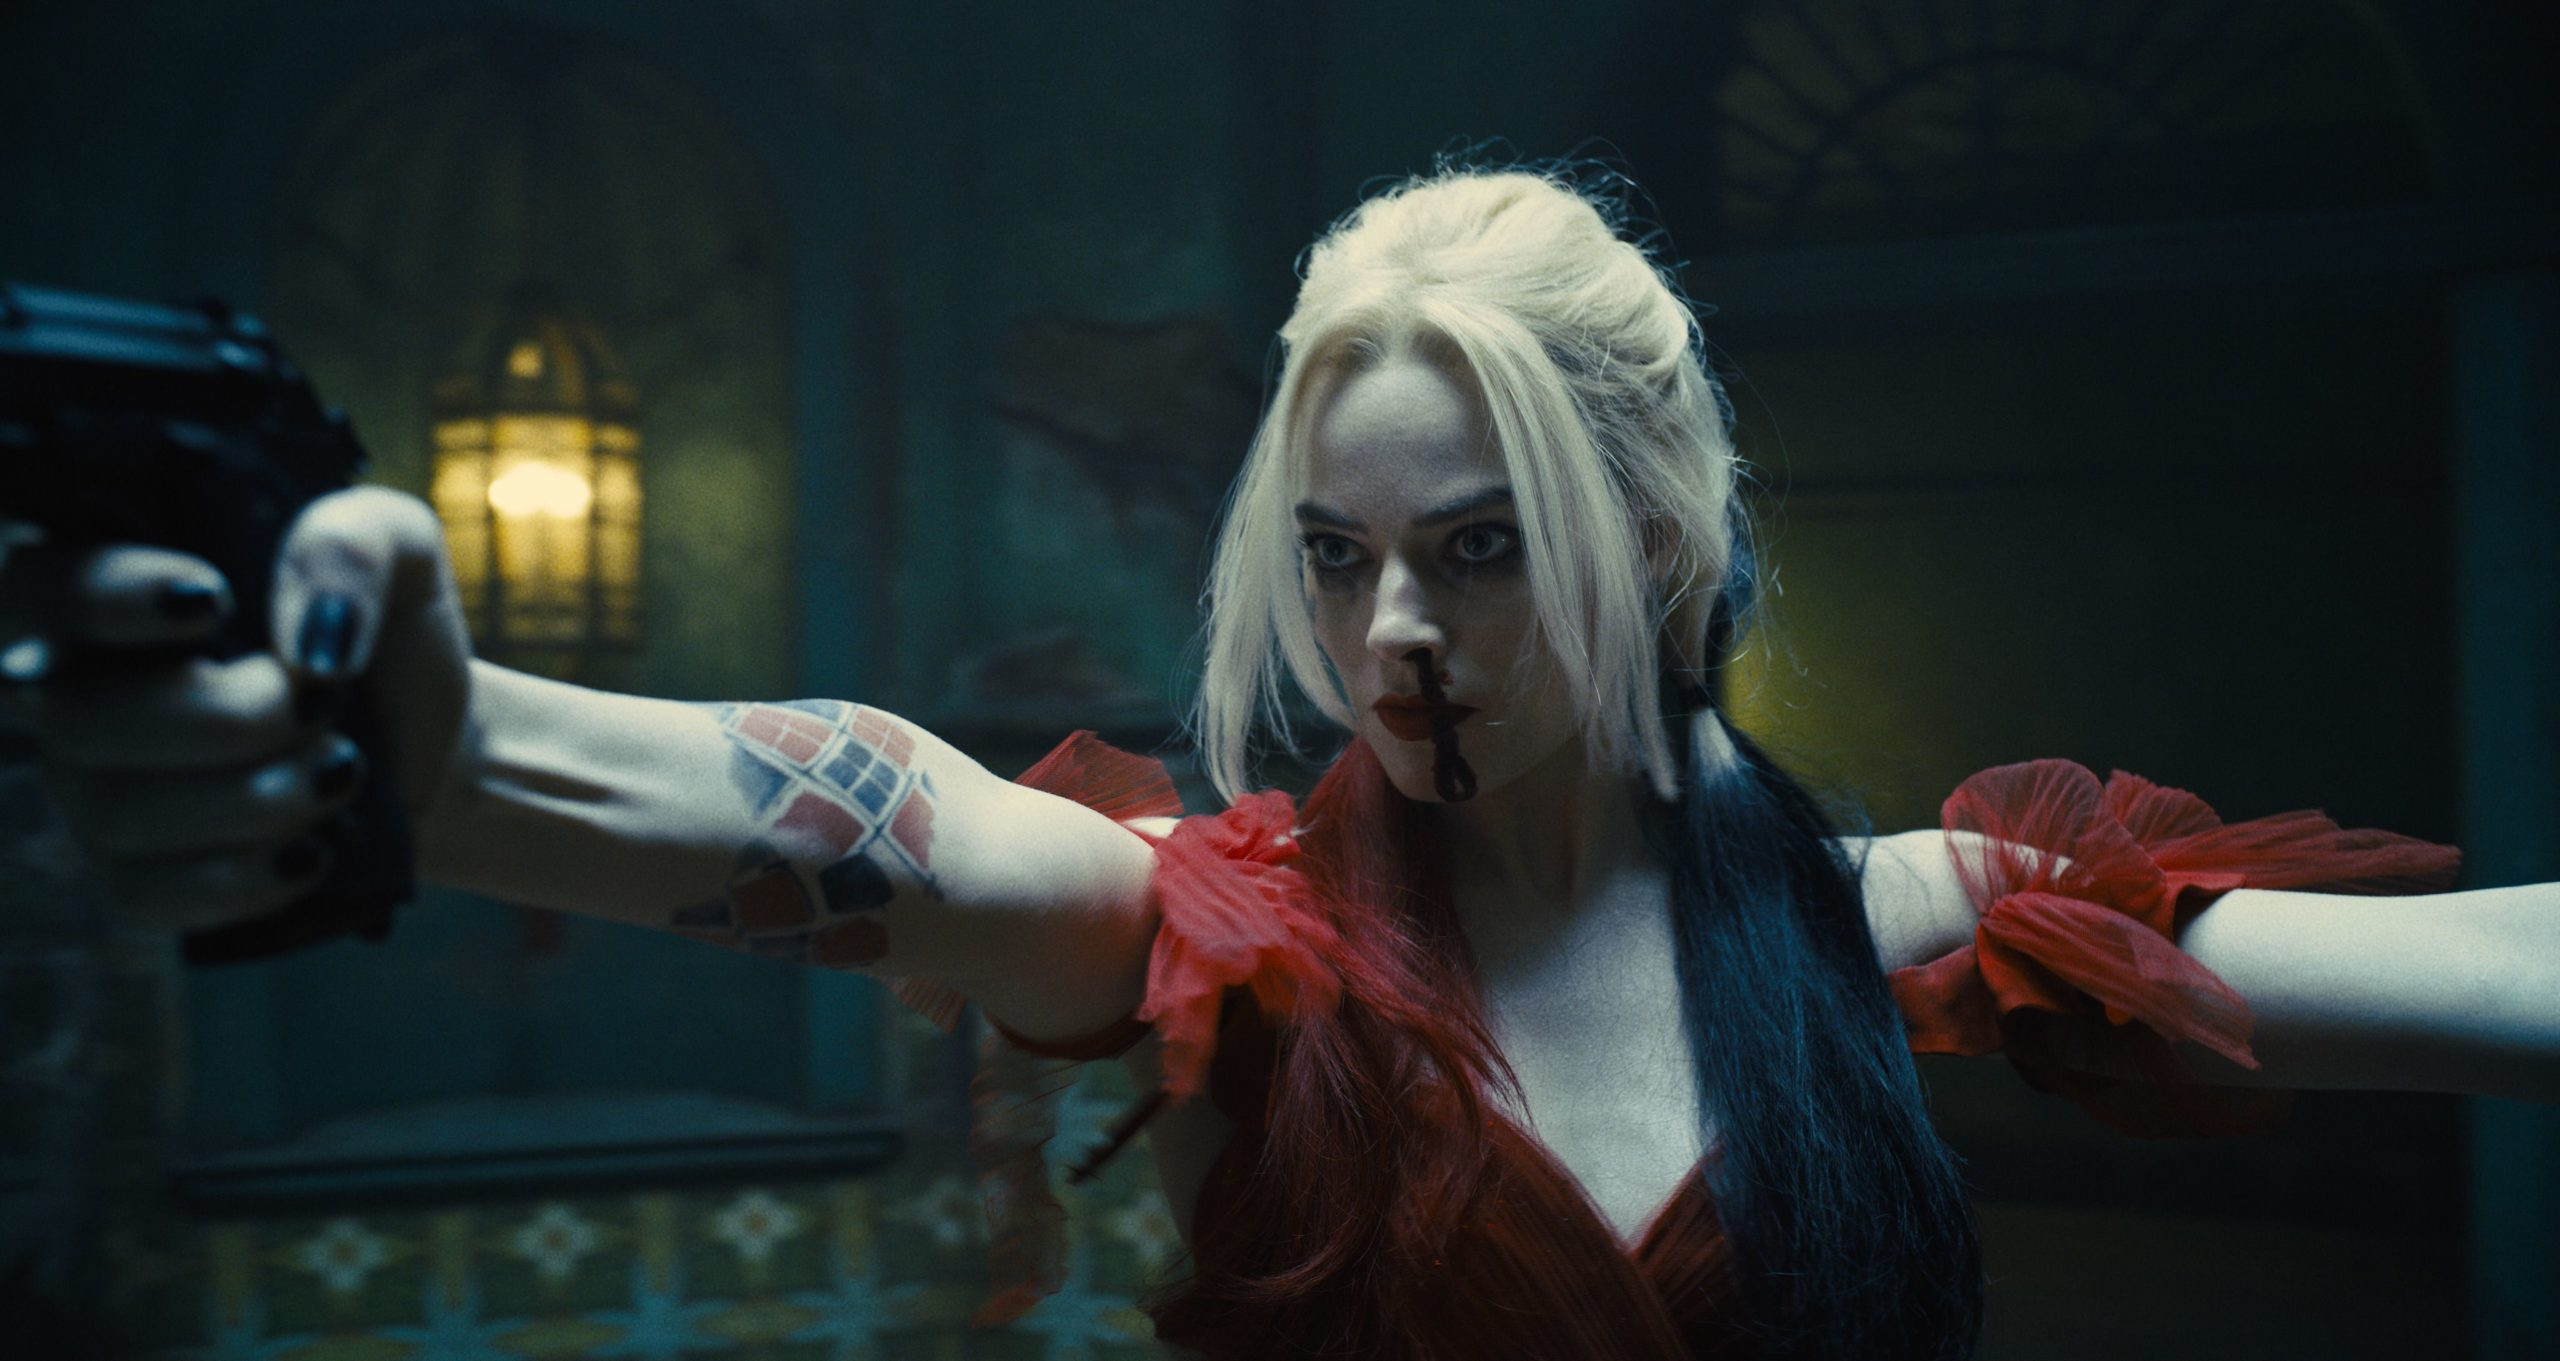 784884 byte size of The Suicide Squad Harley Quinn Margot Robbie YG.jpg